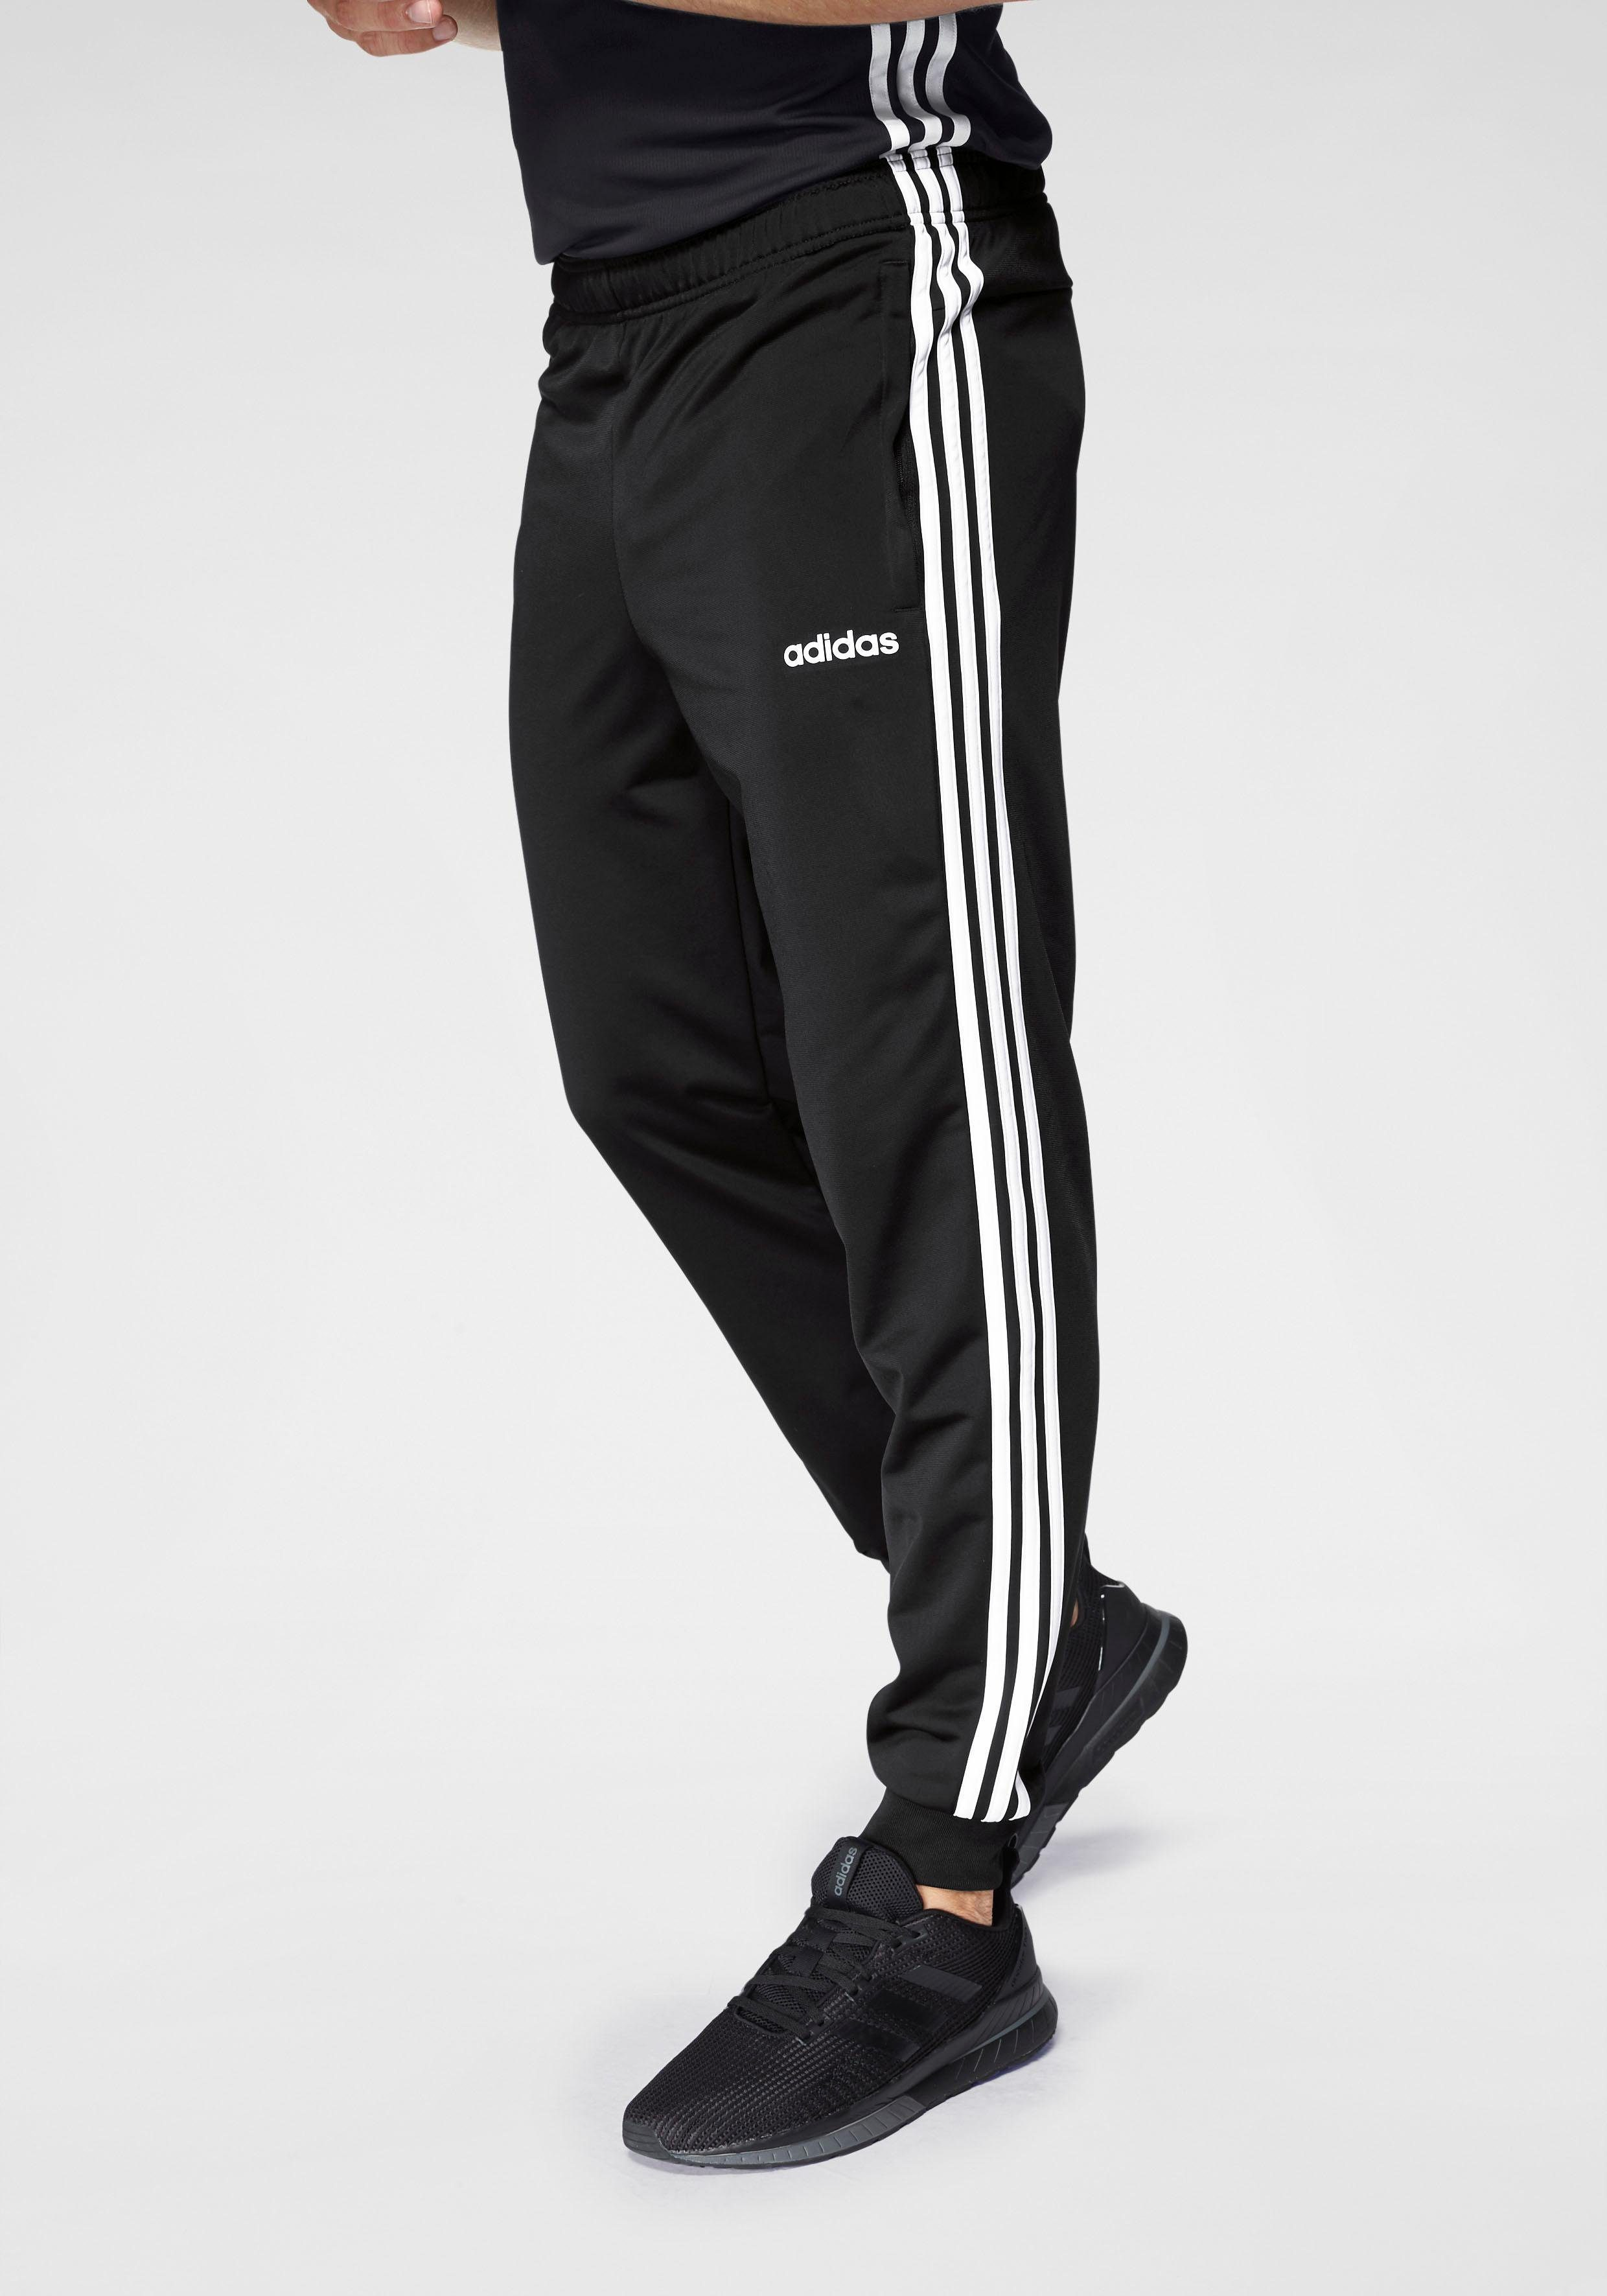 adidas Performance Trainingshose »E 3 STRIPES T PANT TRIC« online kaufen |  OTTO